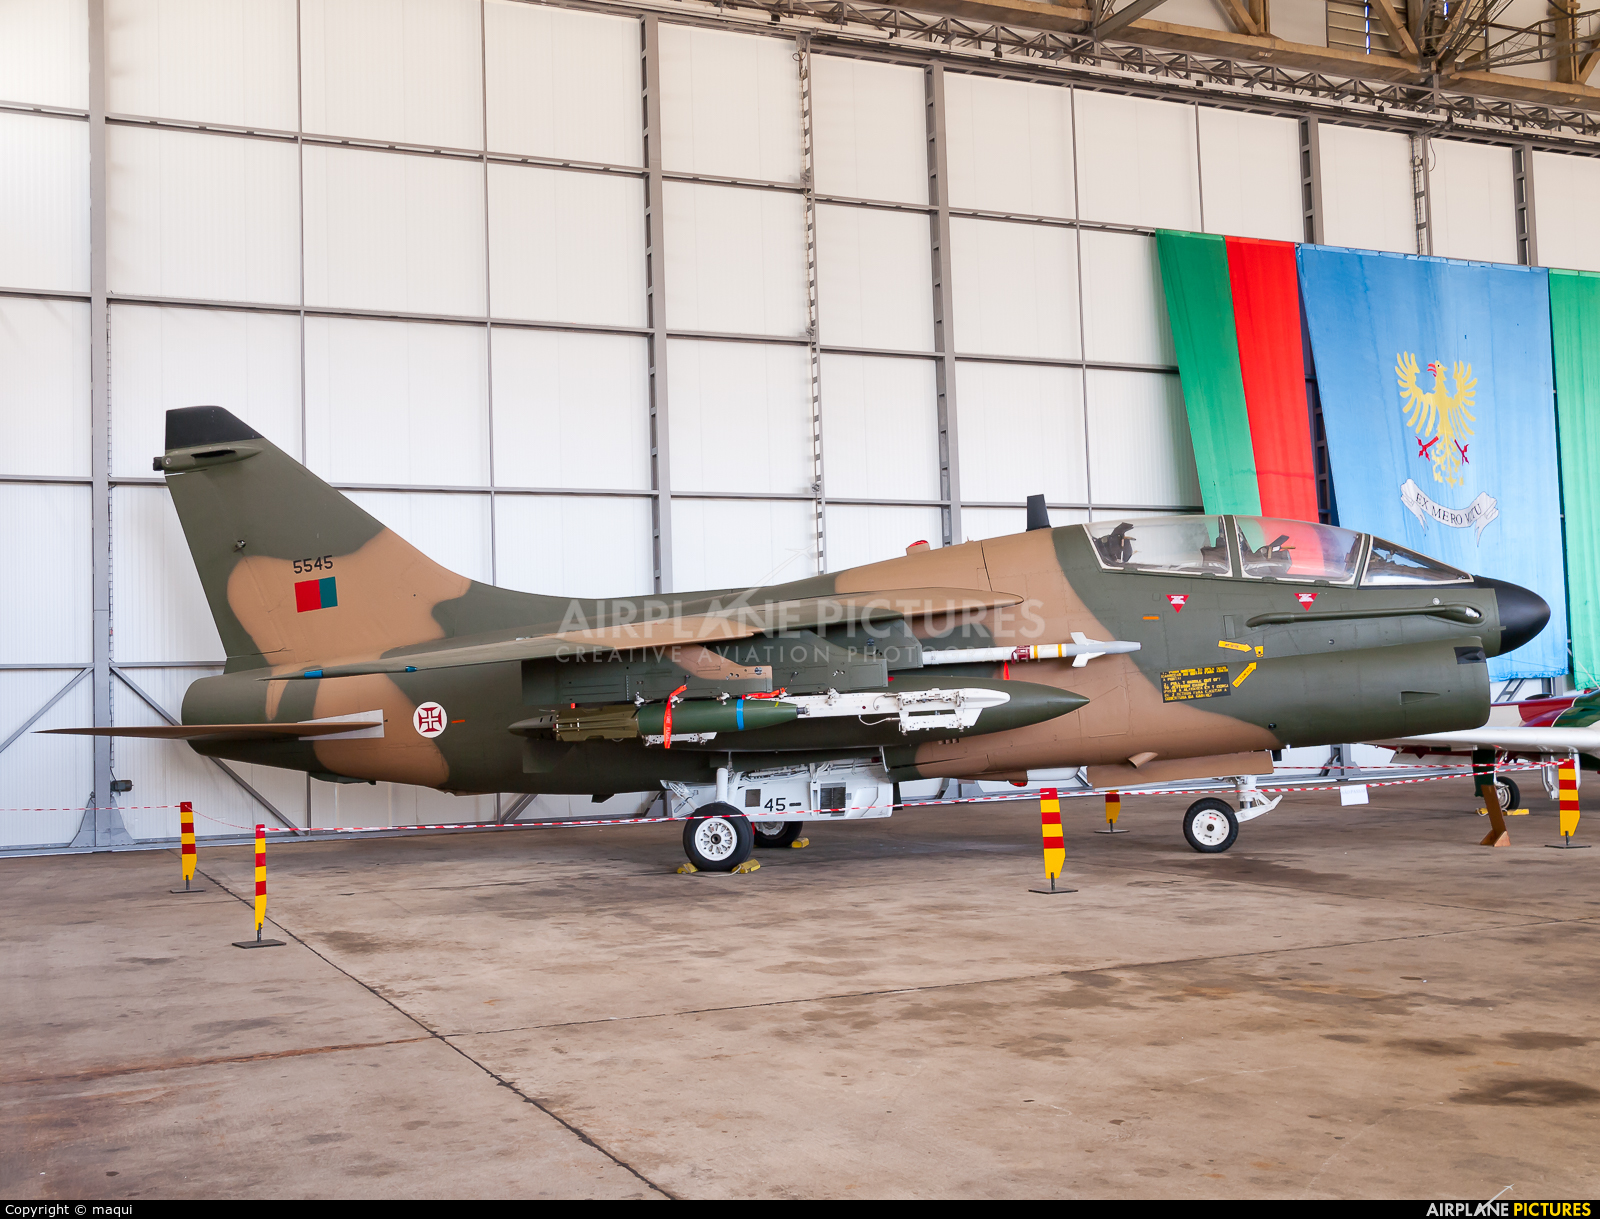 Portugal - Air Force 5545 aircraft at Ovar